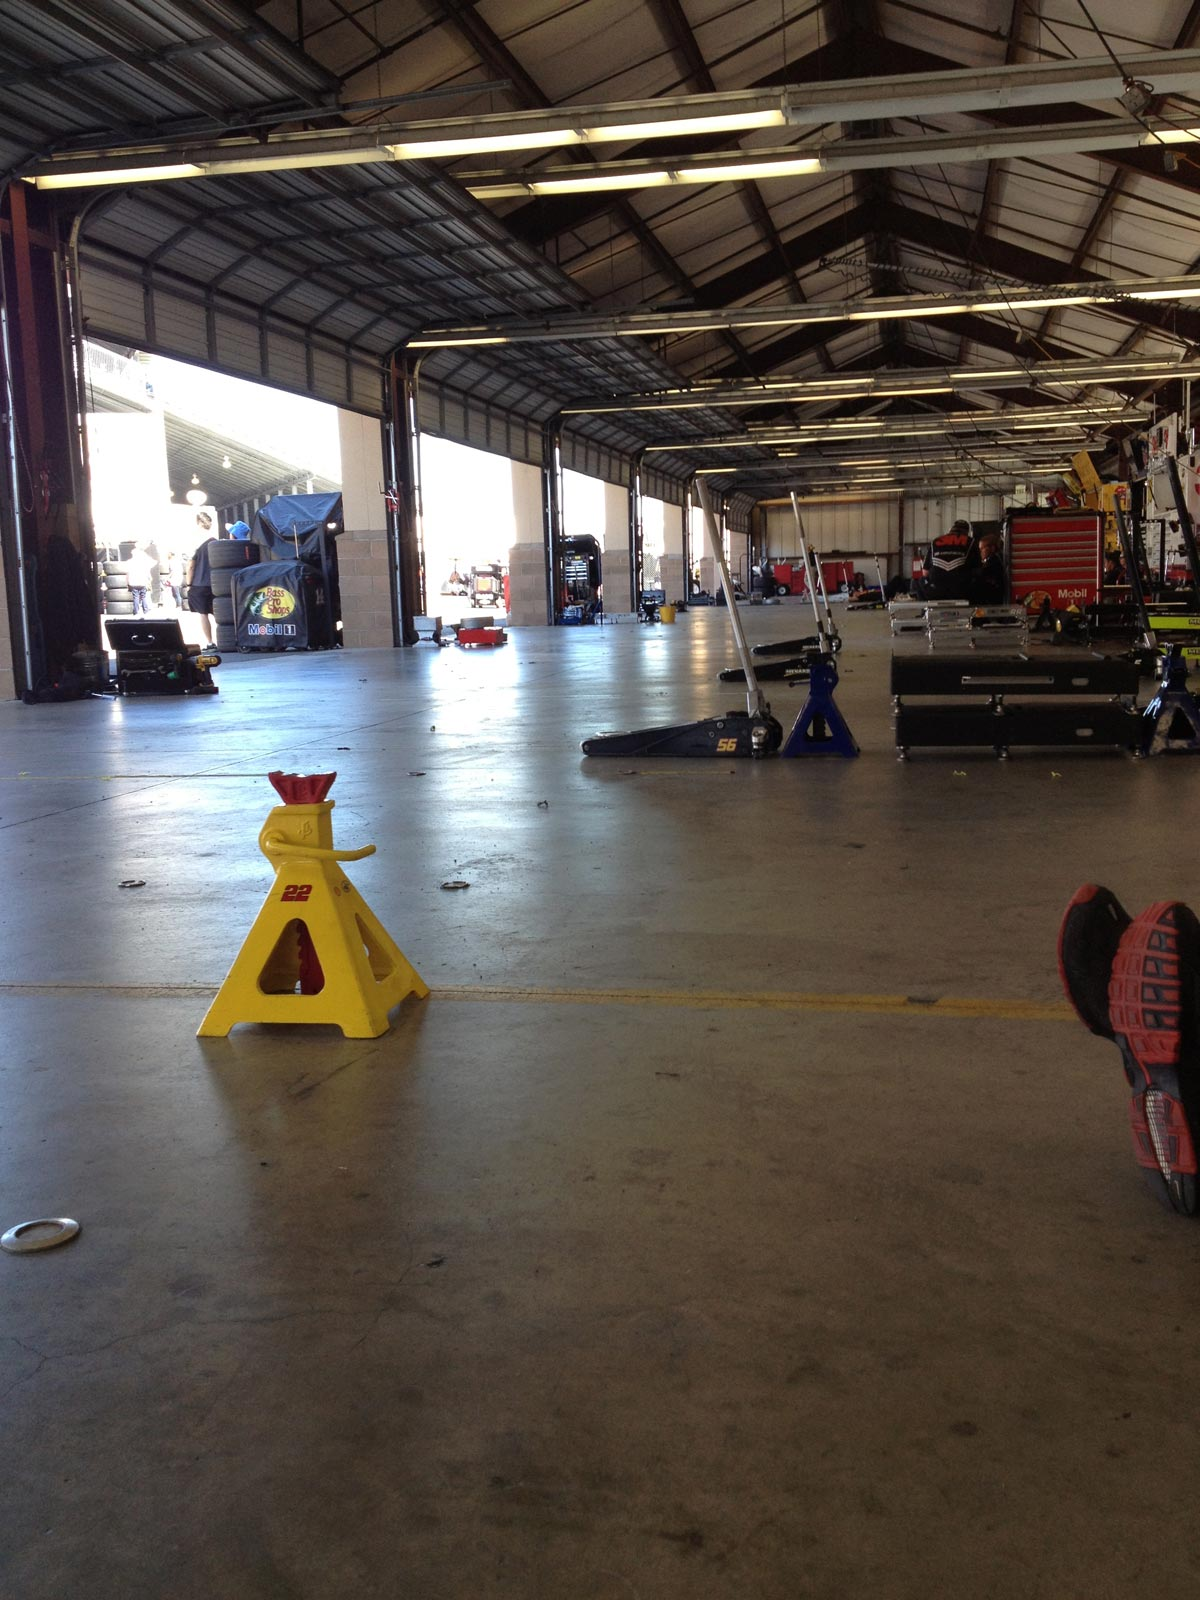 sonoma-saturday-cup-garage-floor